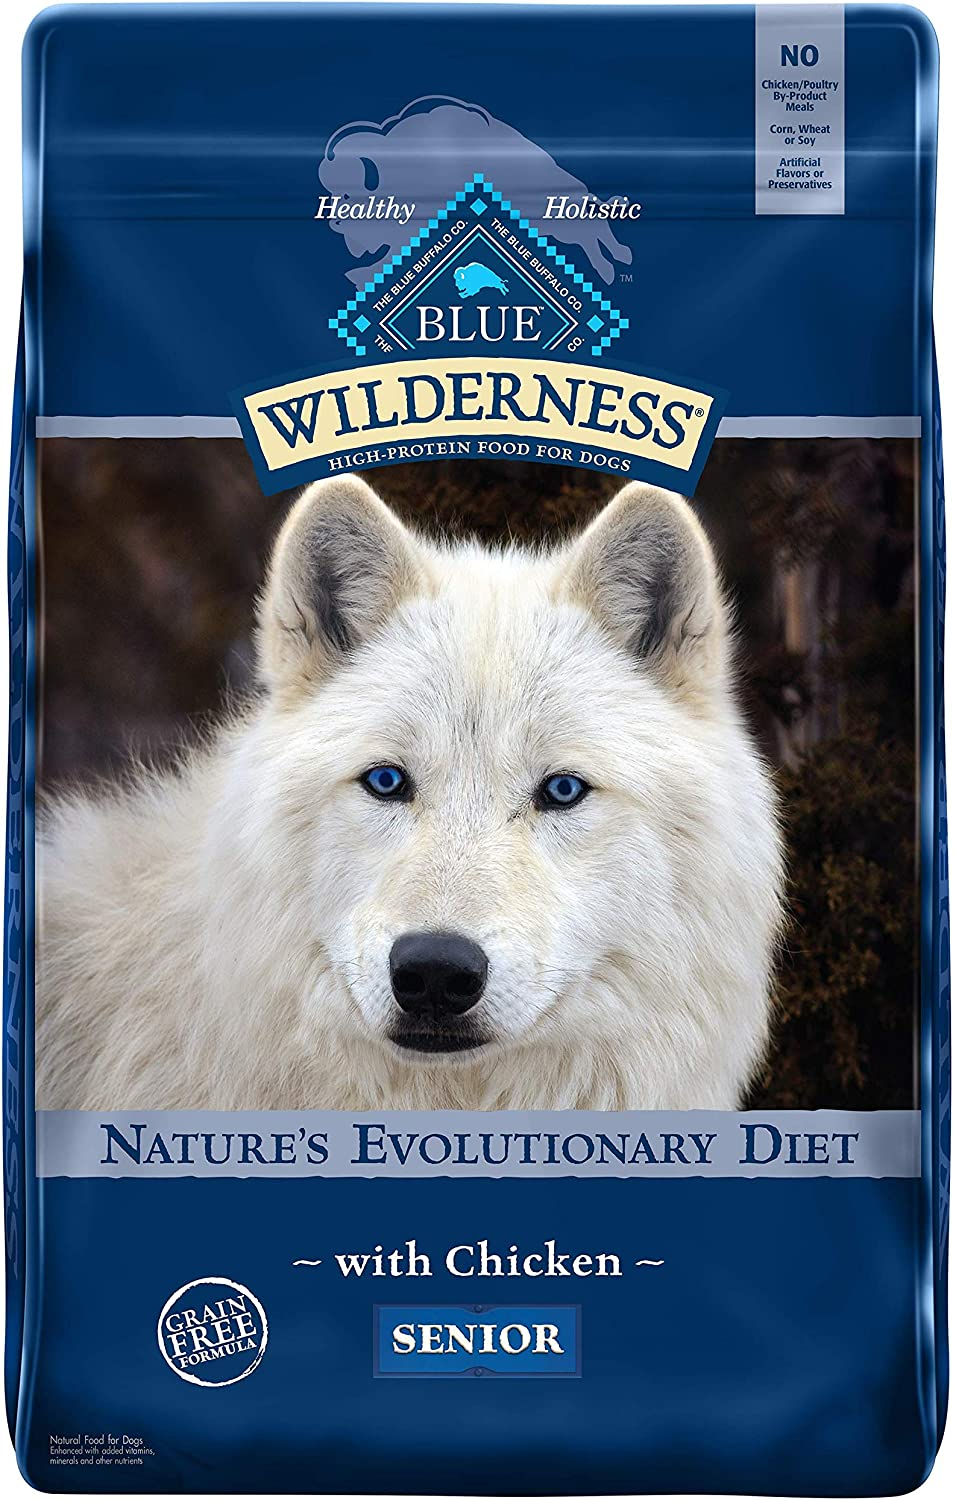 Blue Buffalo Wilderness High Protein, Natural Senior Dry Dog Food, Chicken 11-lb